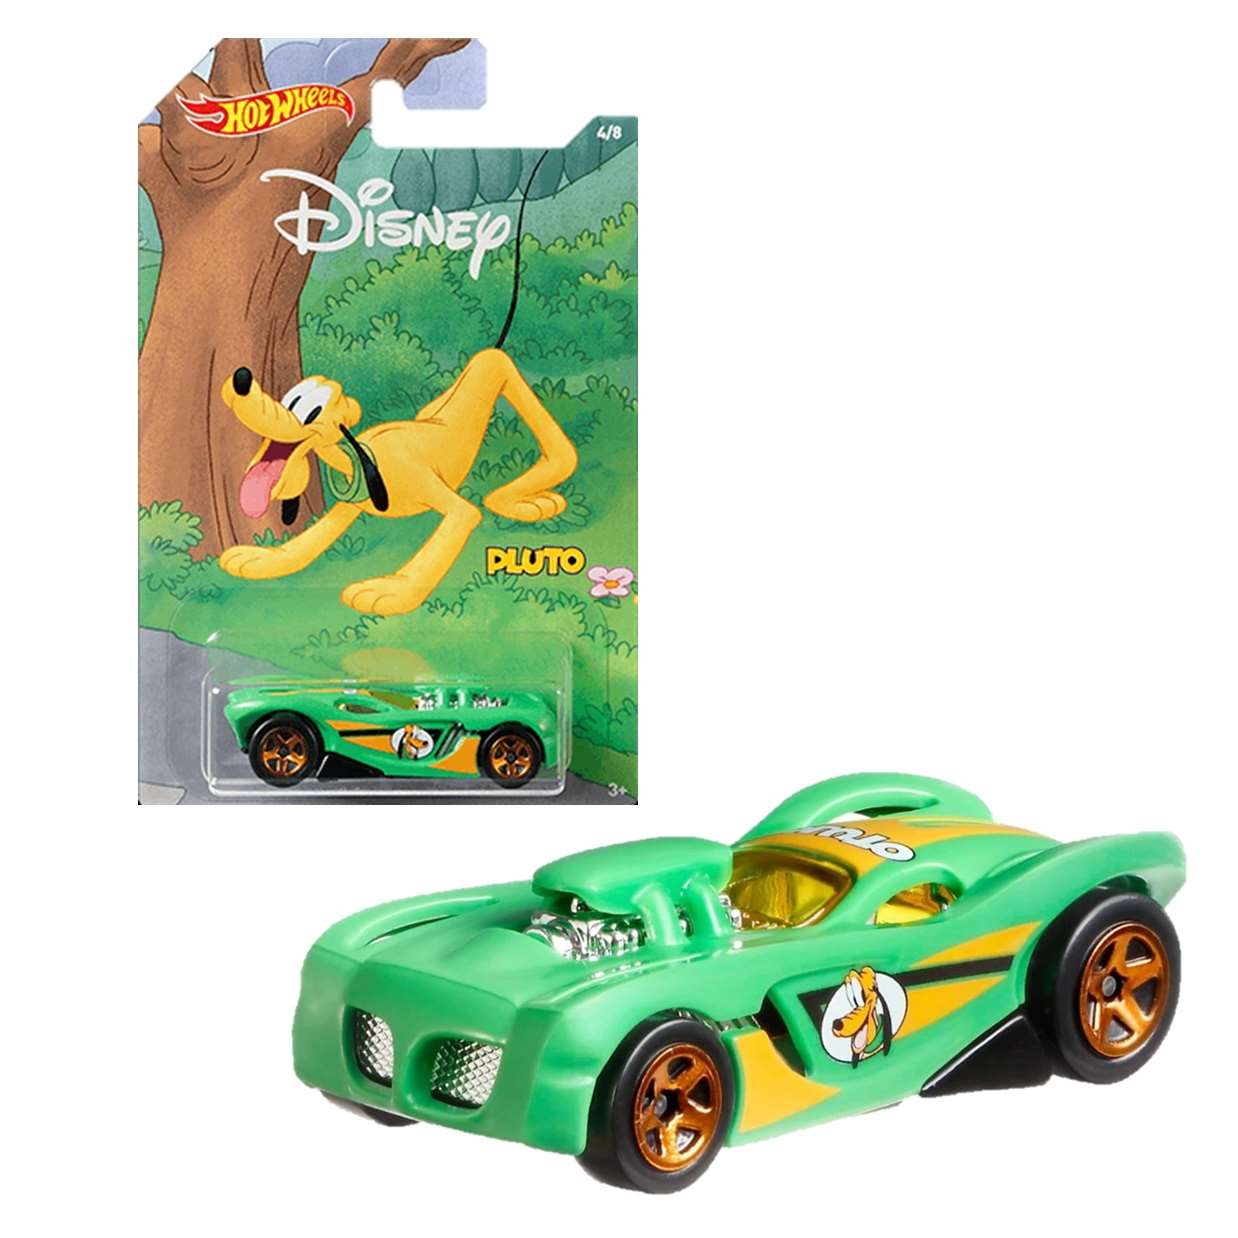 Pluto 16 Angels 4/8 Hot Wheels Disney Mickey And Friends